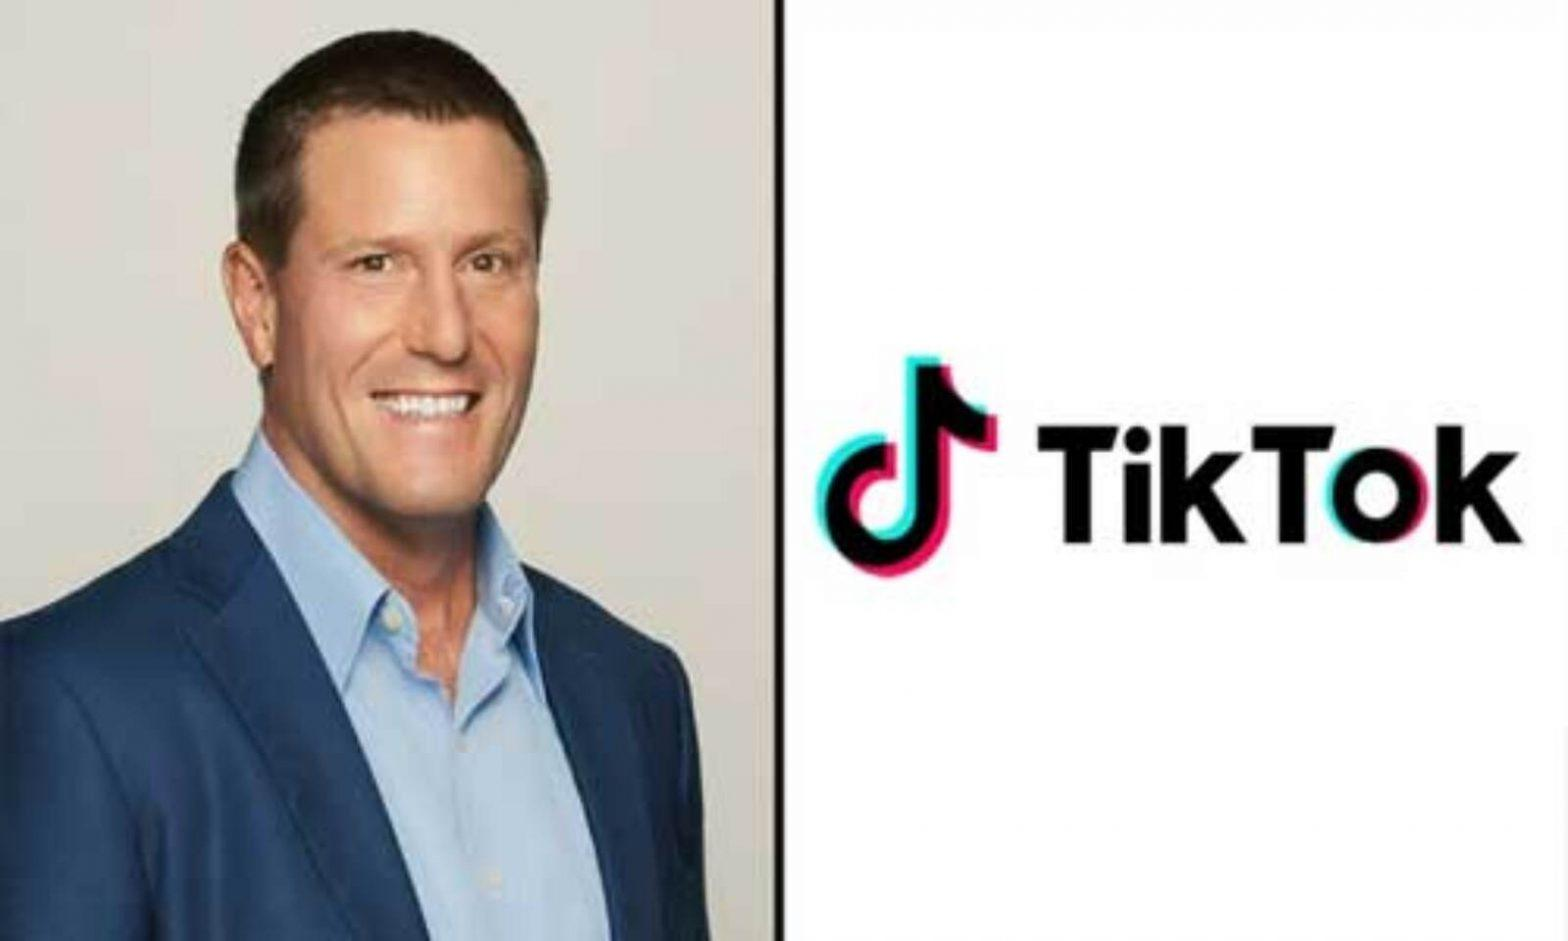 Kevin Mayer resigns as CEO of TikTok_40.1